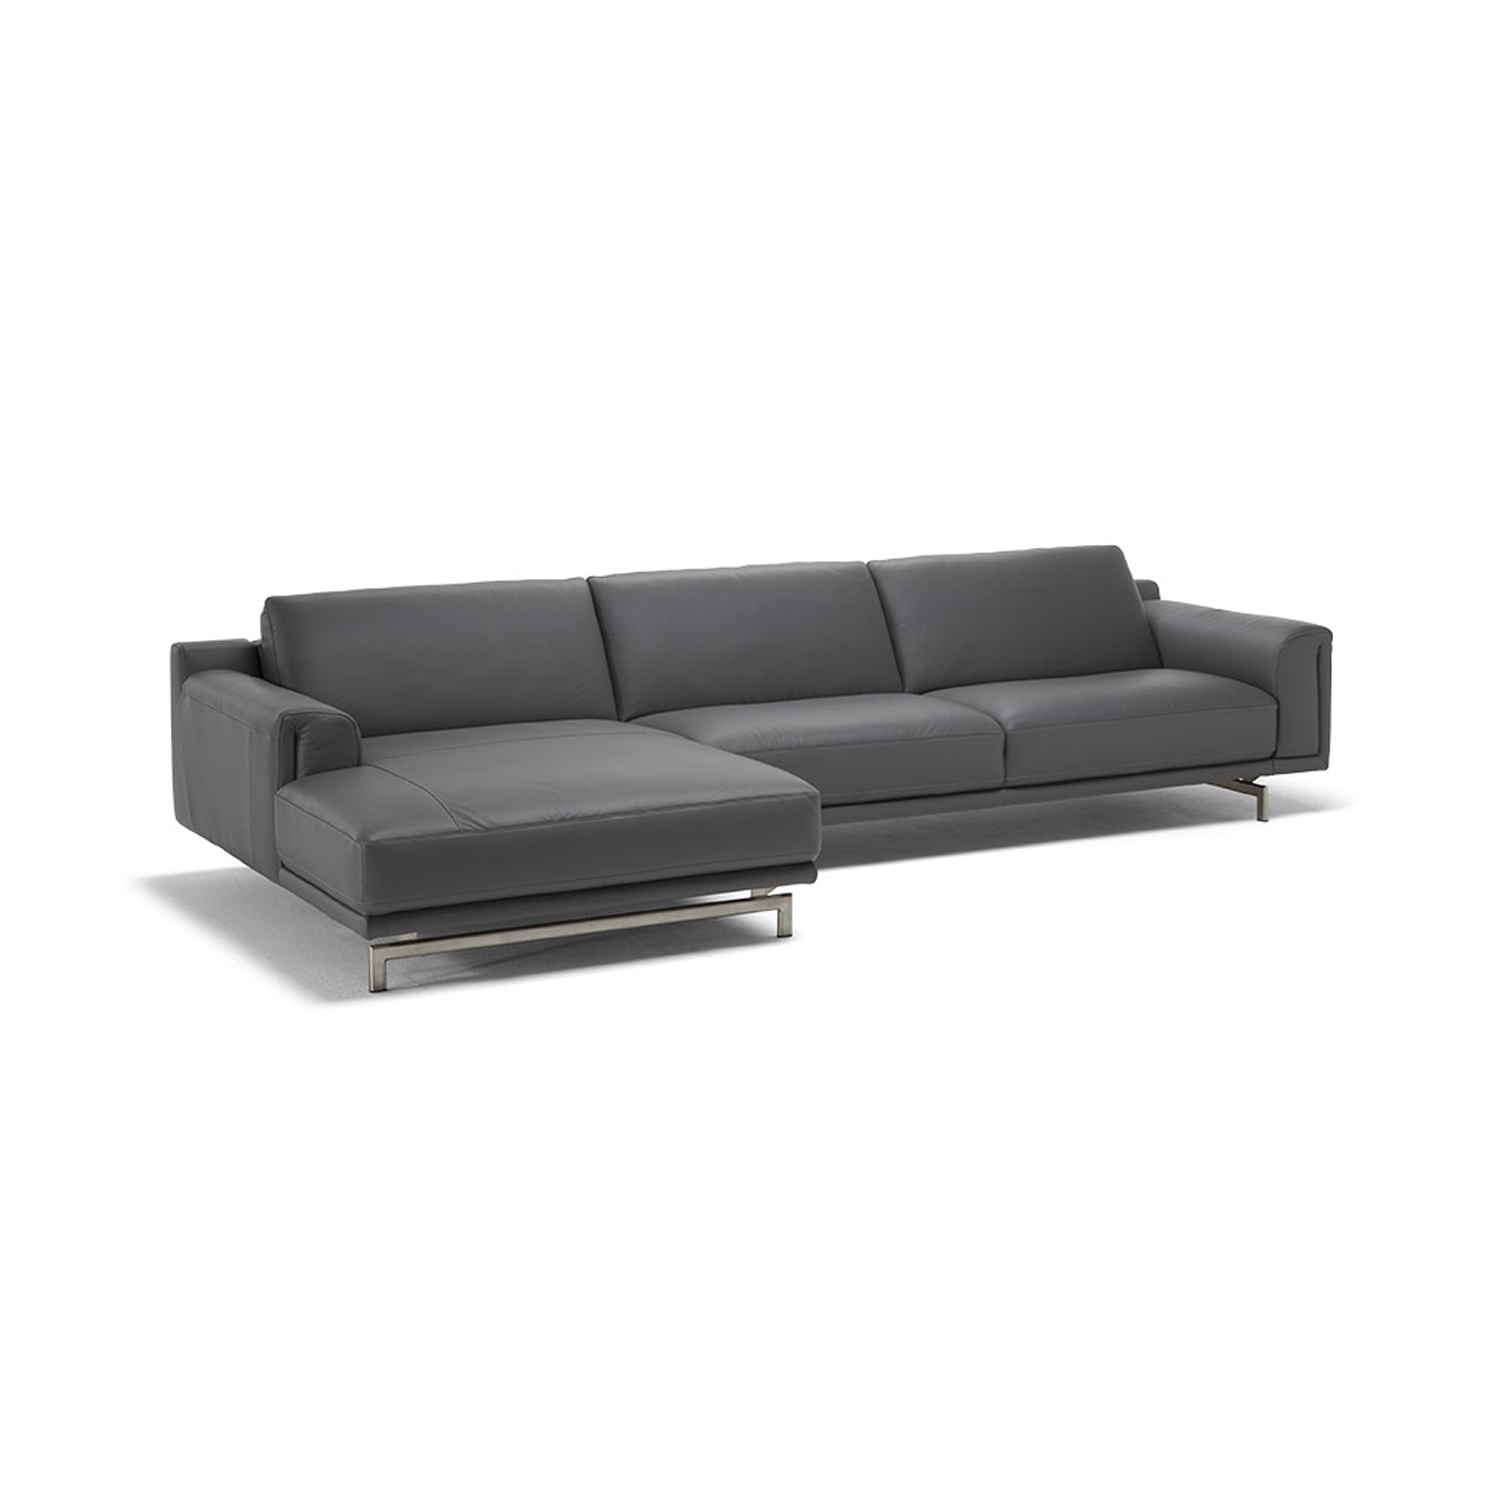 marco cream chaise sofa by factory outlet paula deen sectional natuzzi editions rocco with